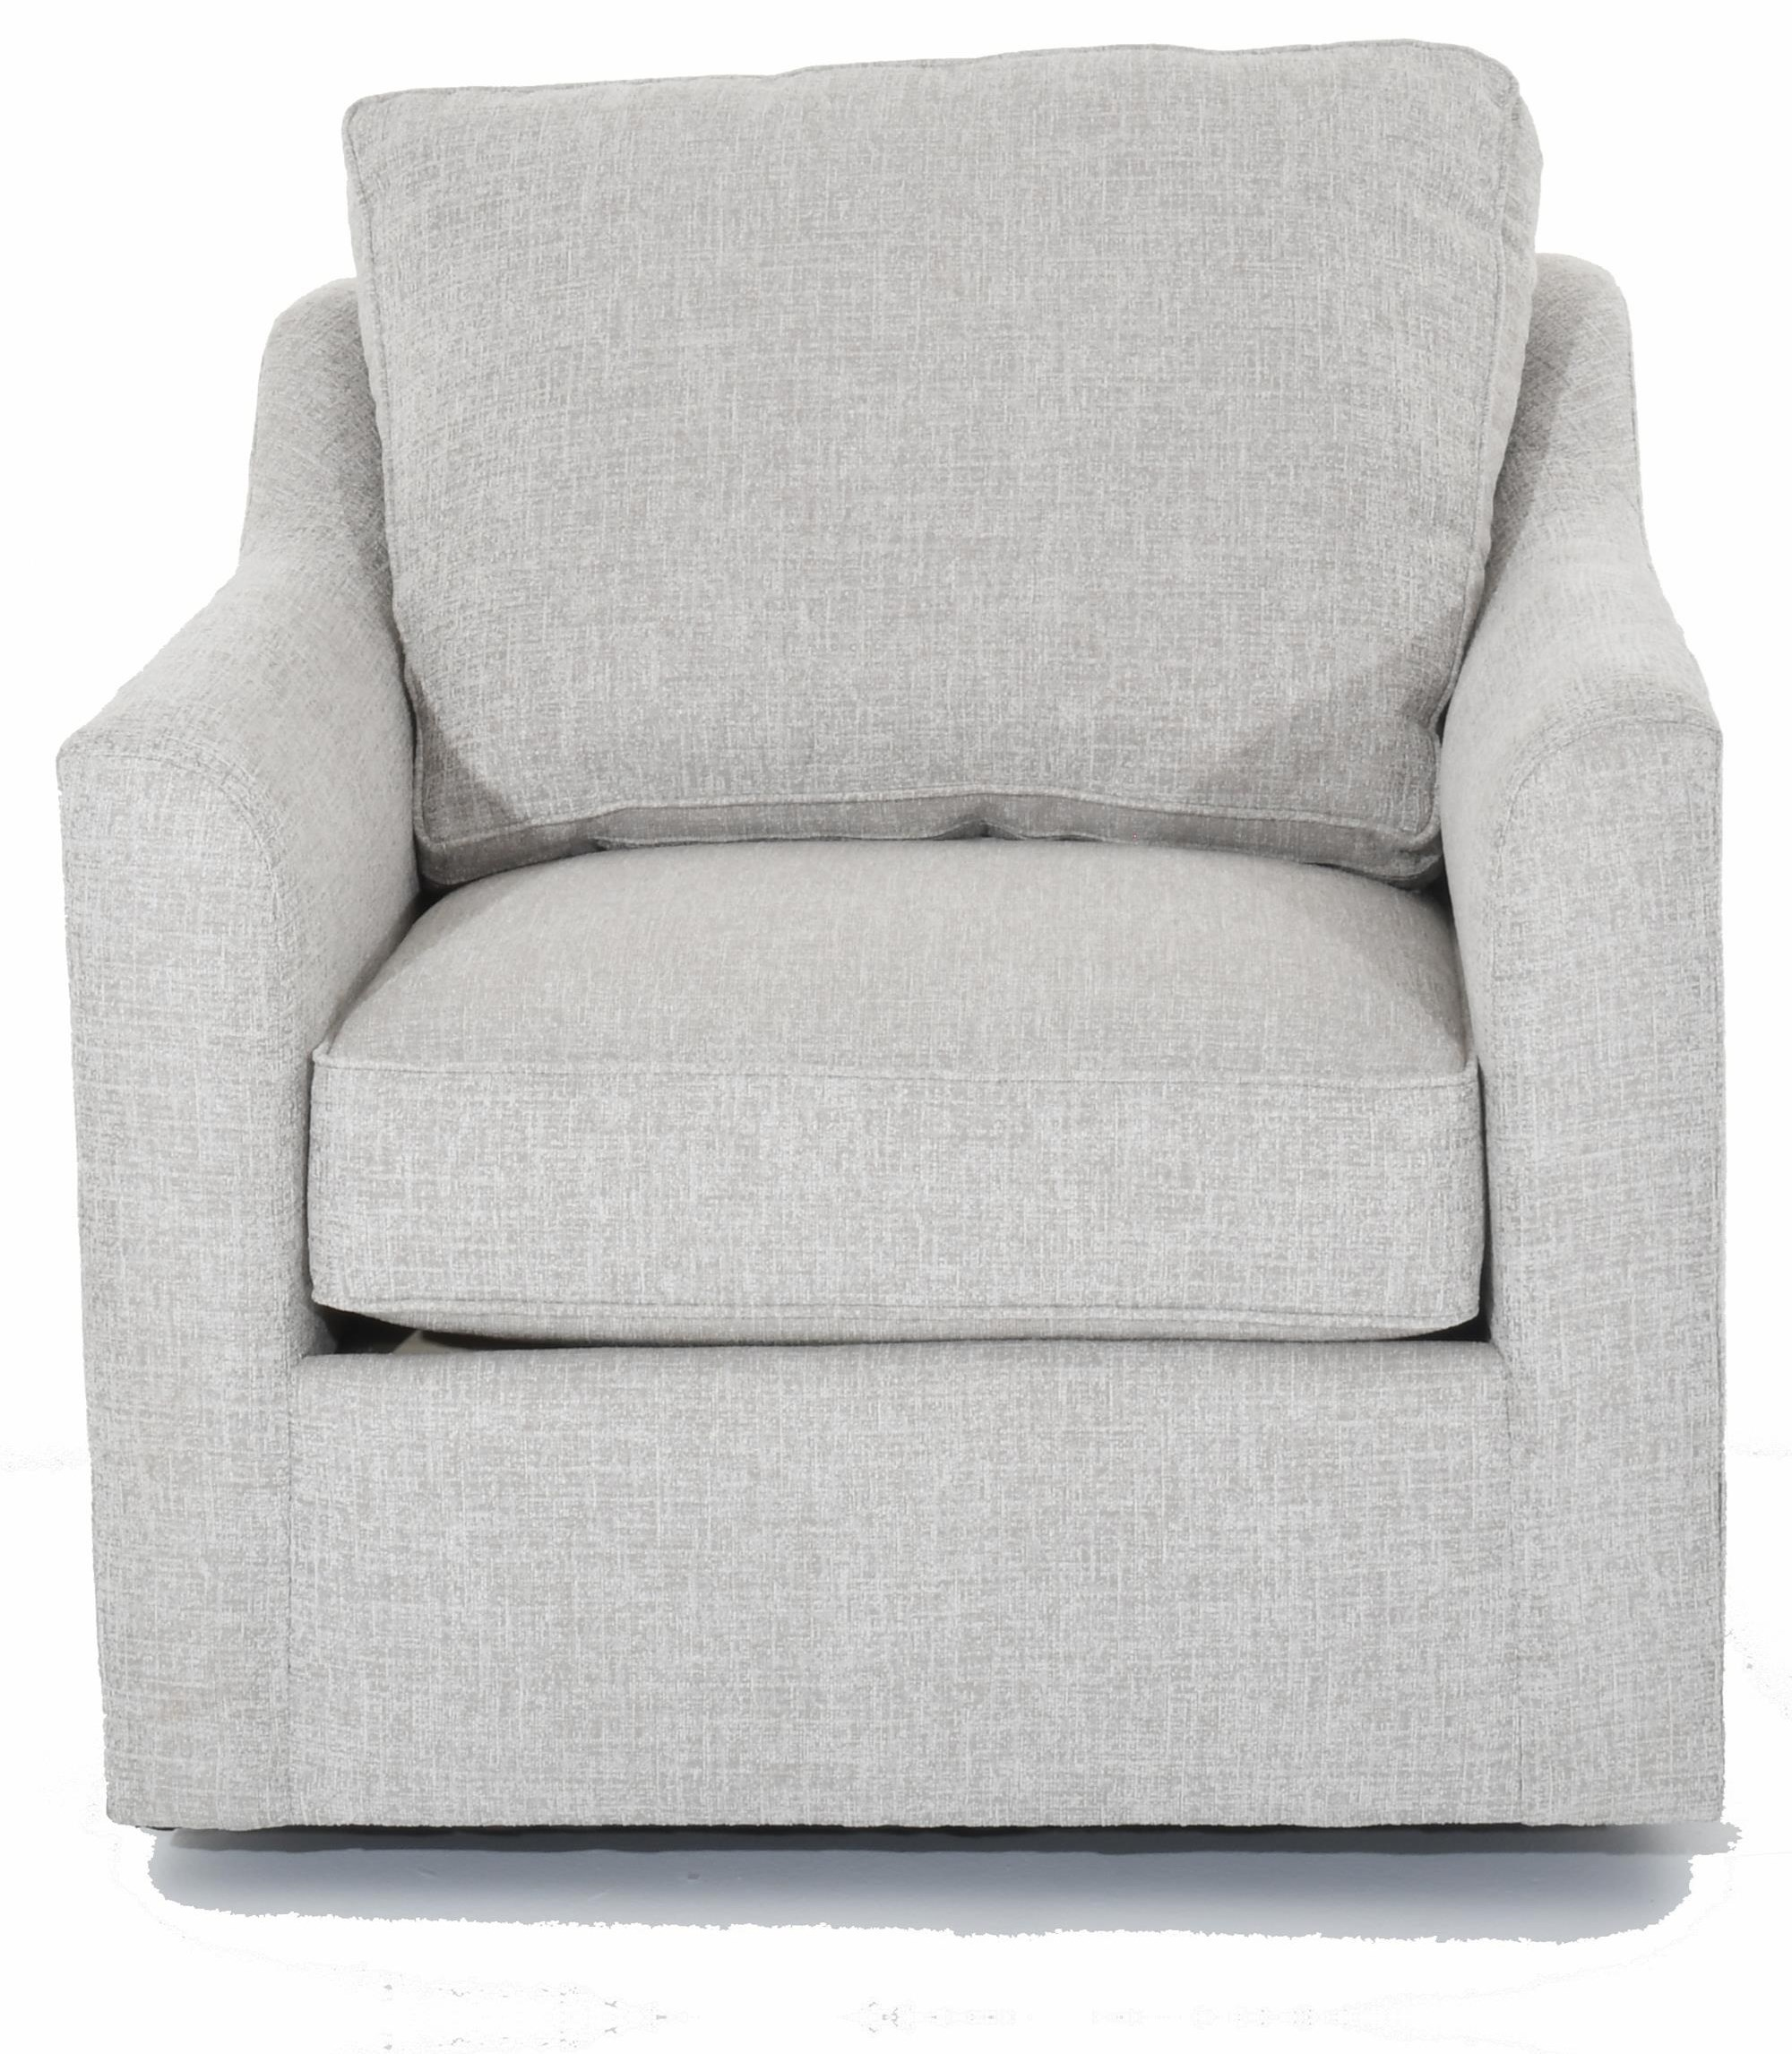 Simplicity Customizable Tux Arm Swivel Chair by Huntington House at Baer's Furniture